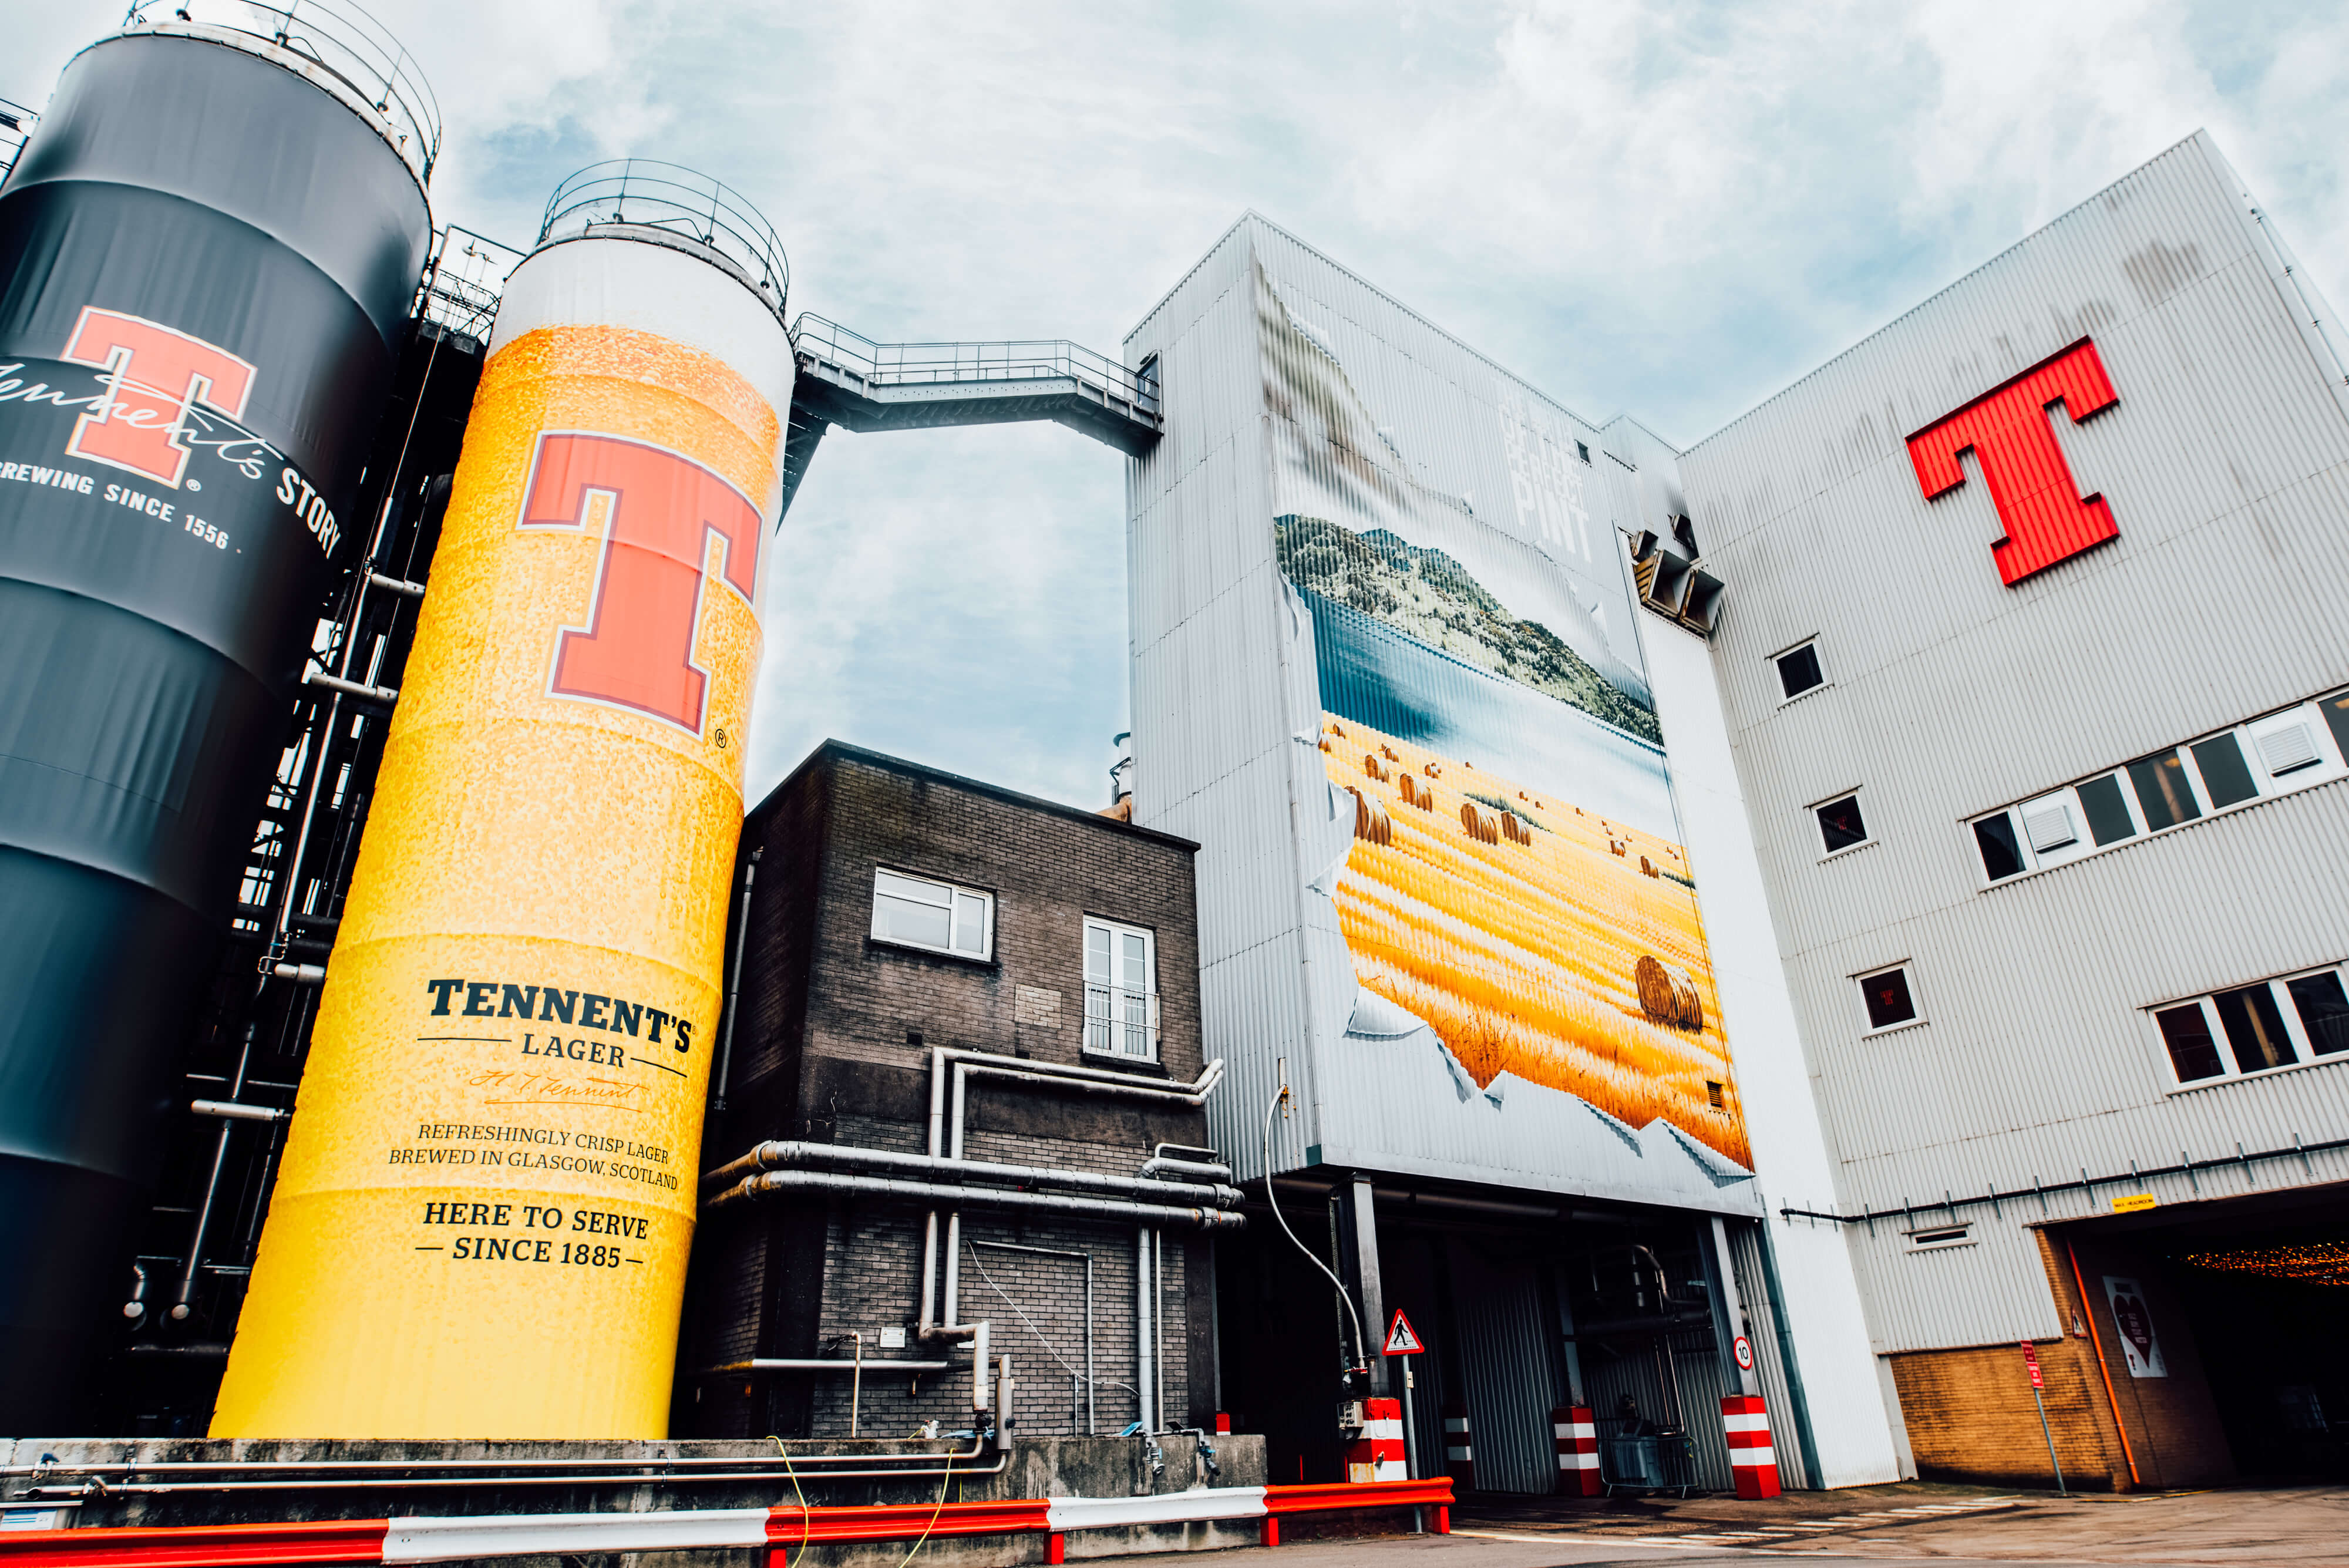 tennents_brewery_tour-glasgow_life-ryanjohnstonco-28